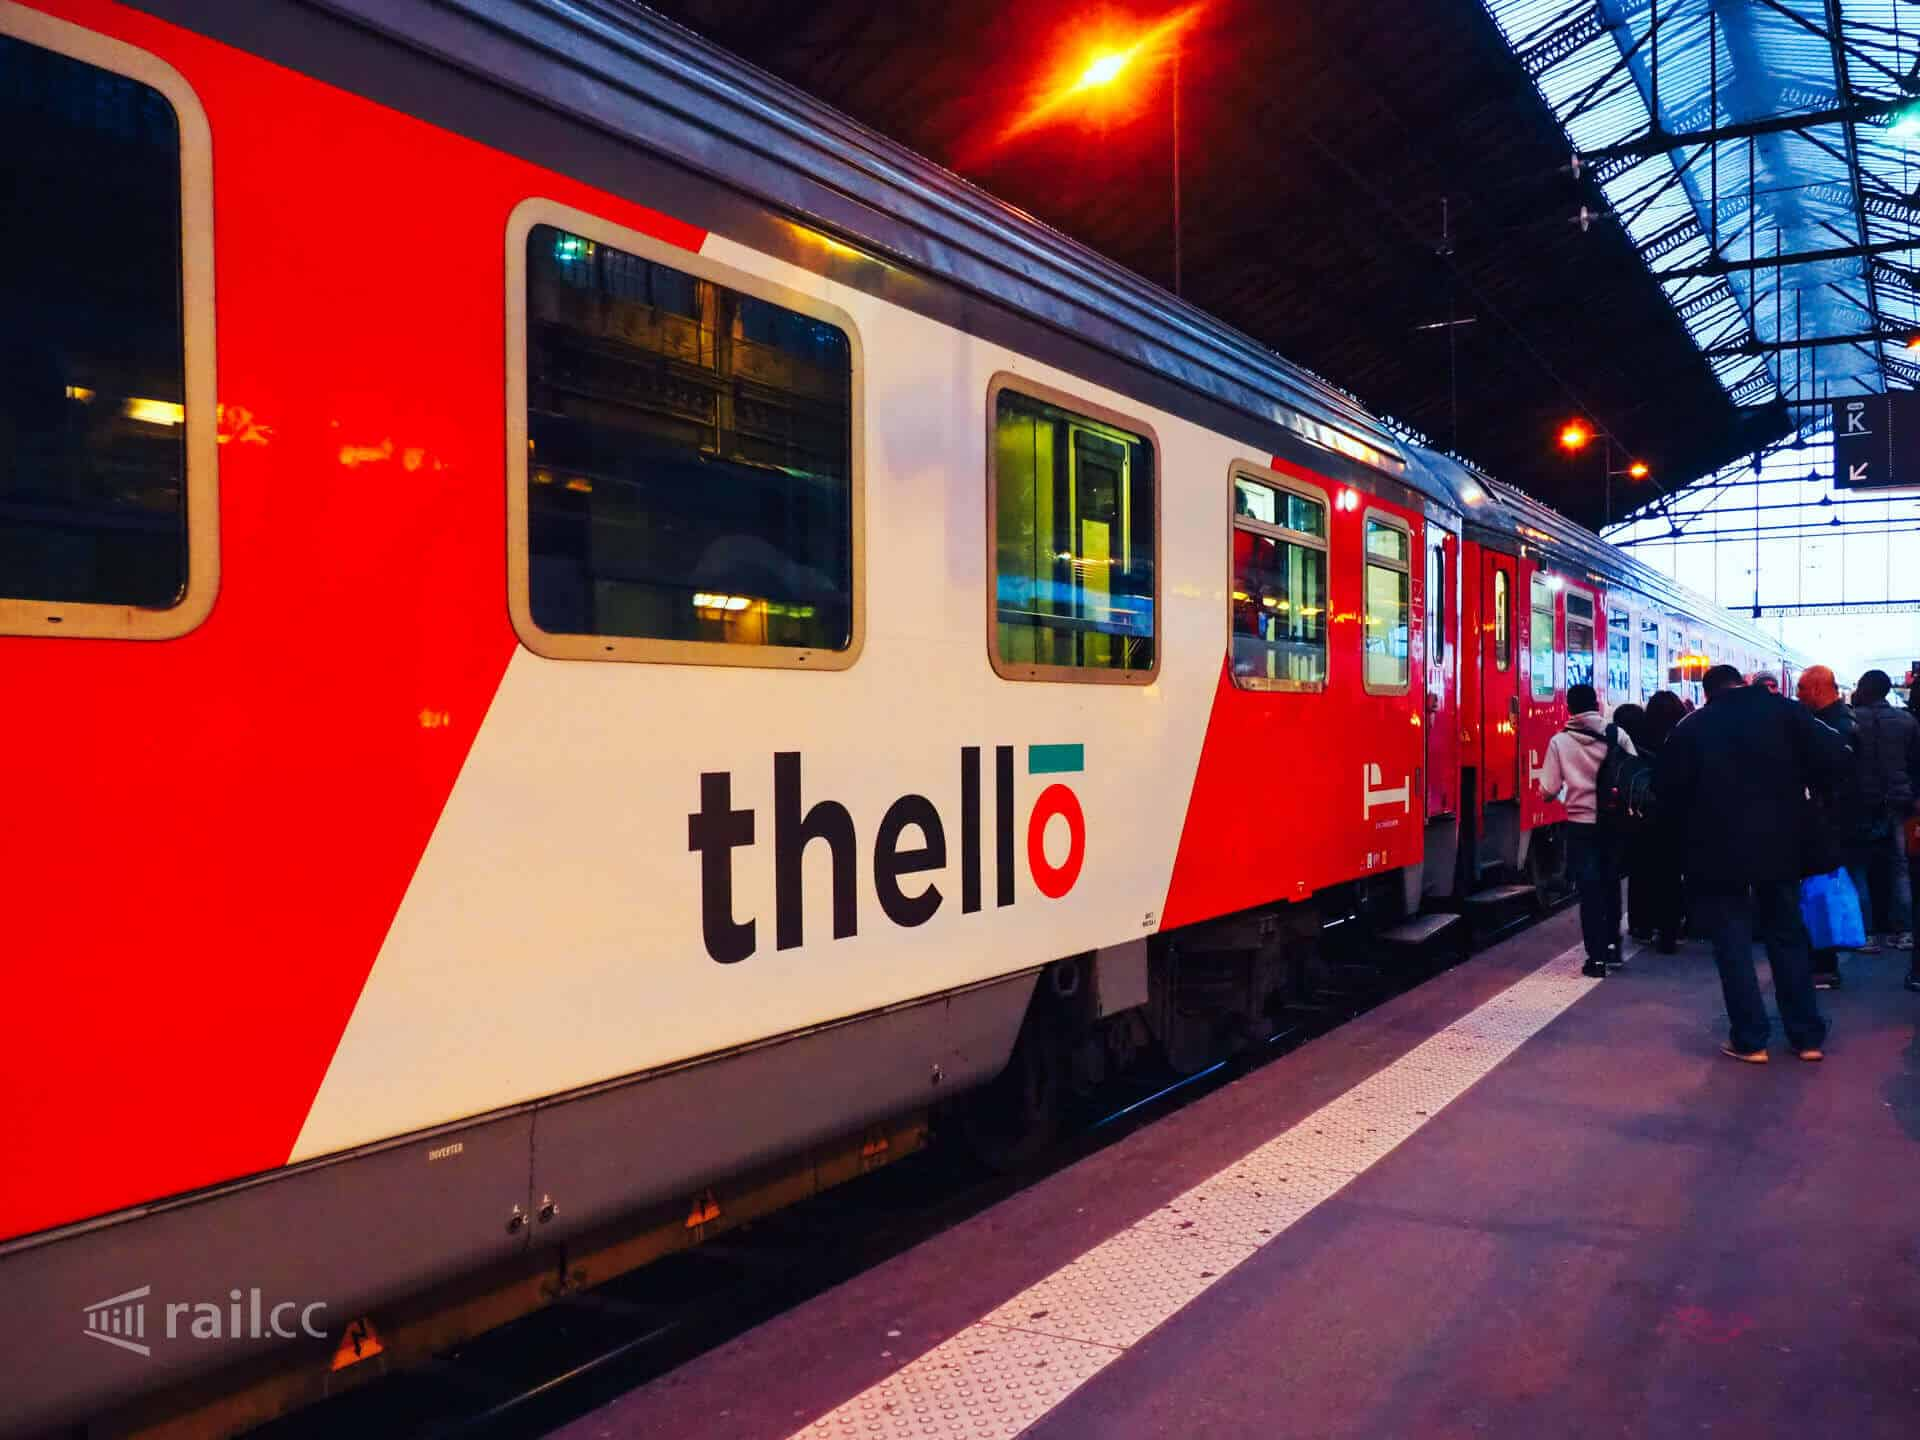 Thello Paris to Venice night train in Paris Gare de Lyon.